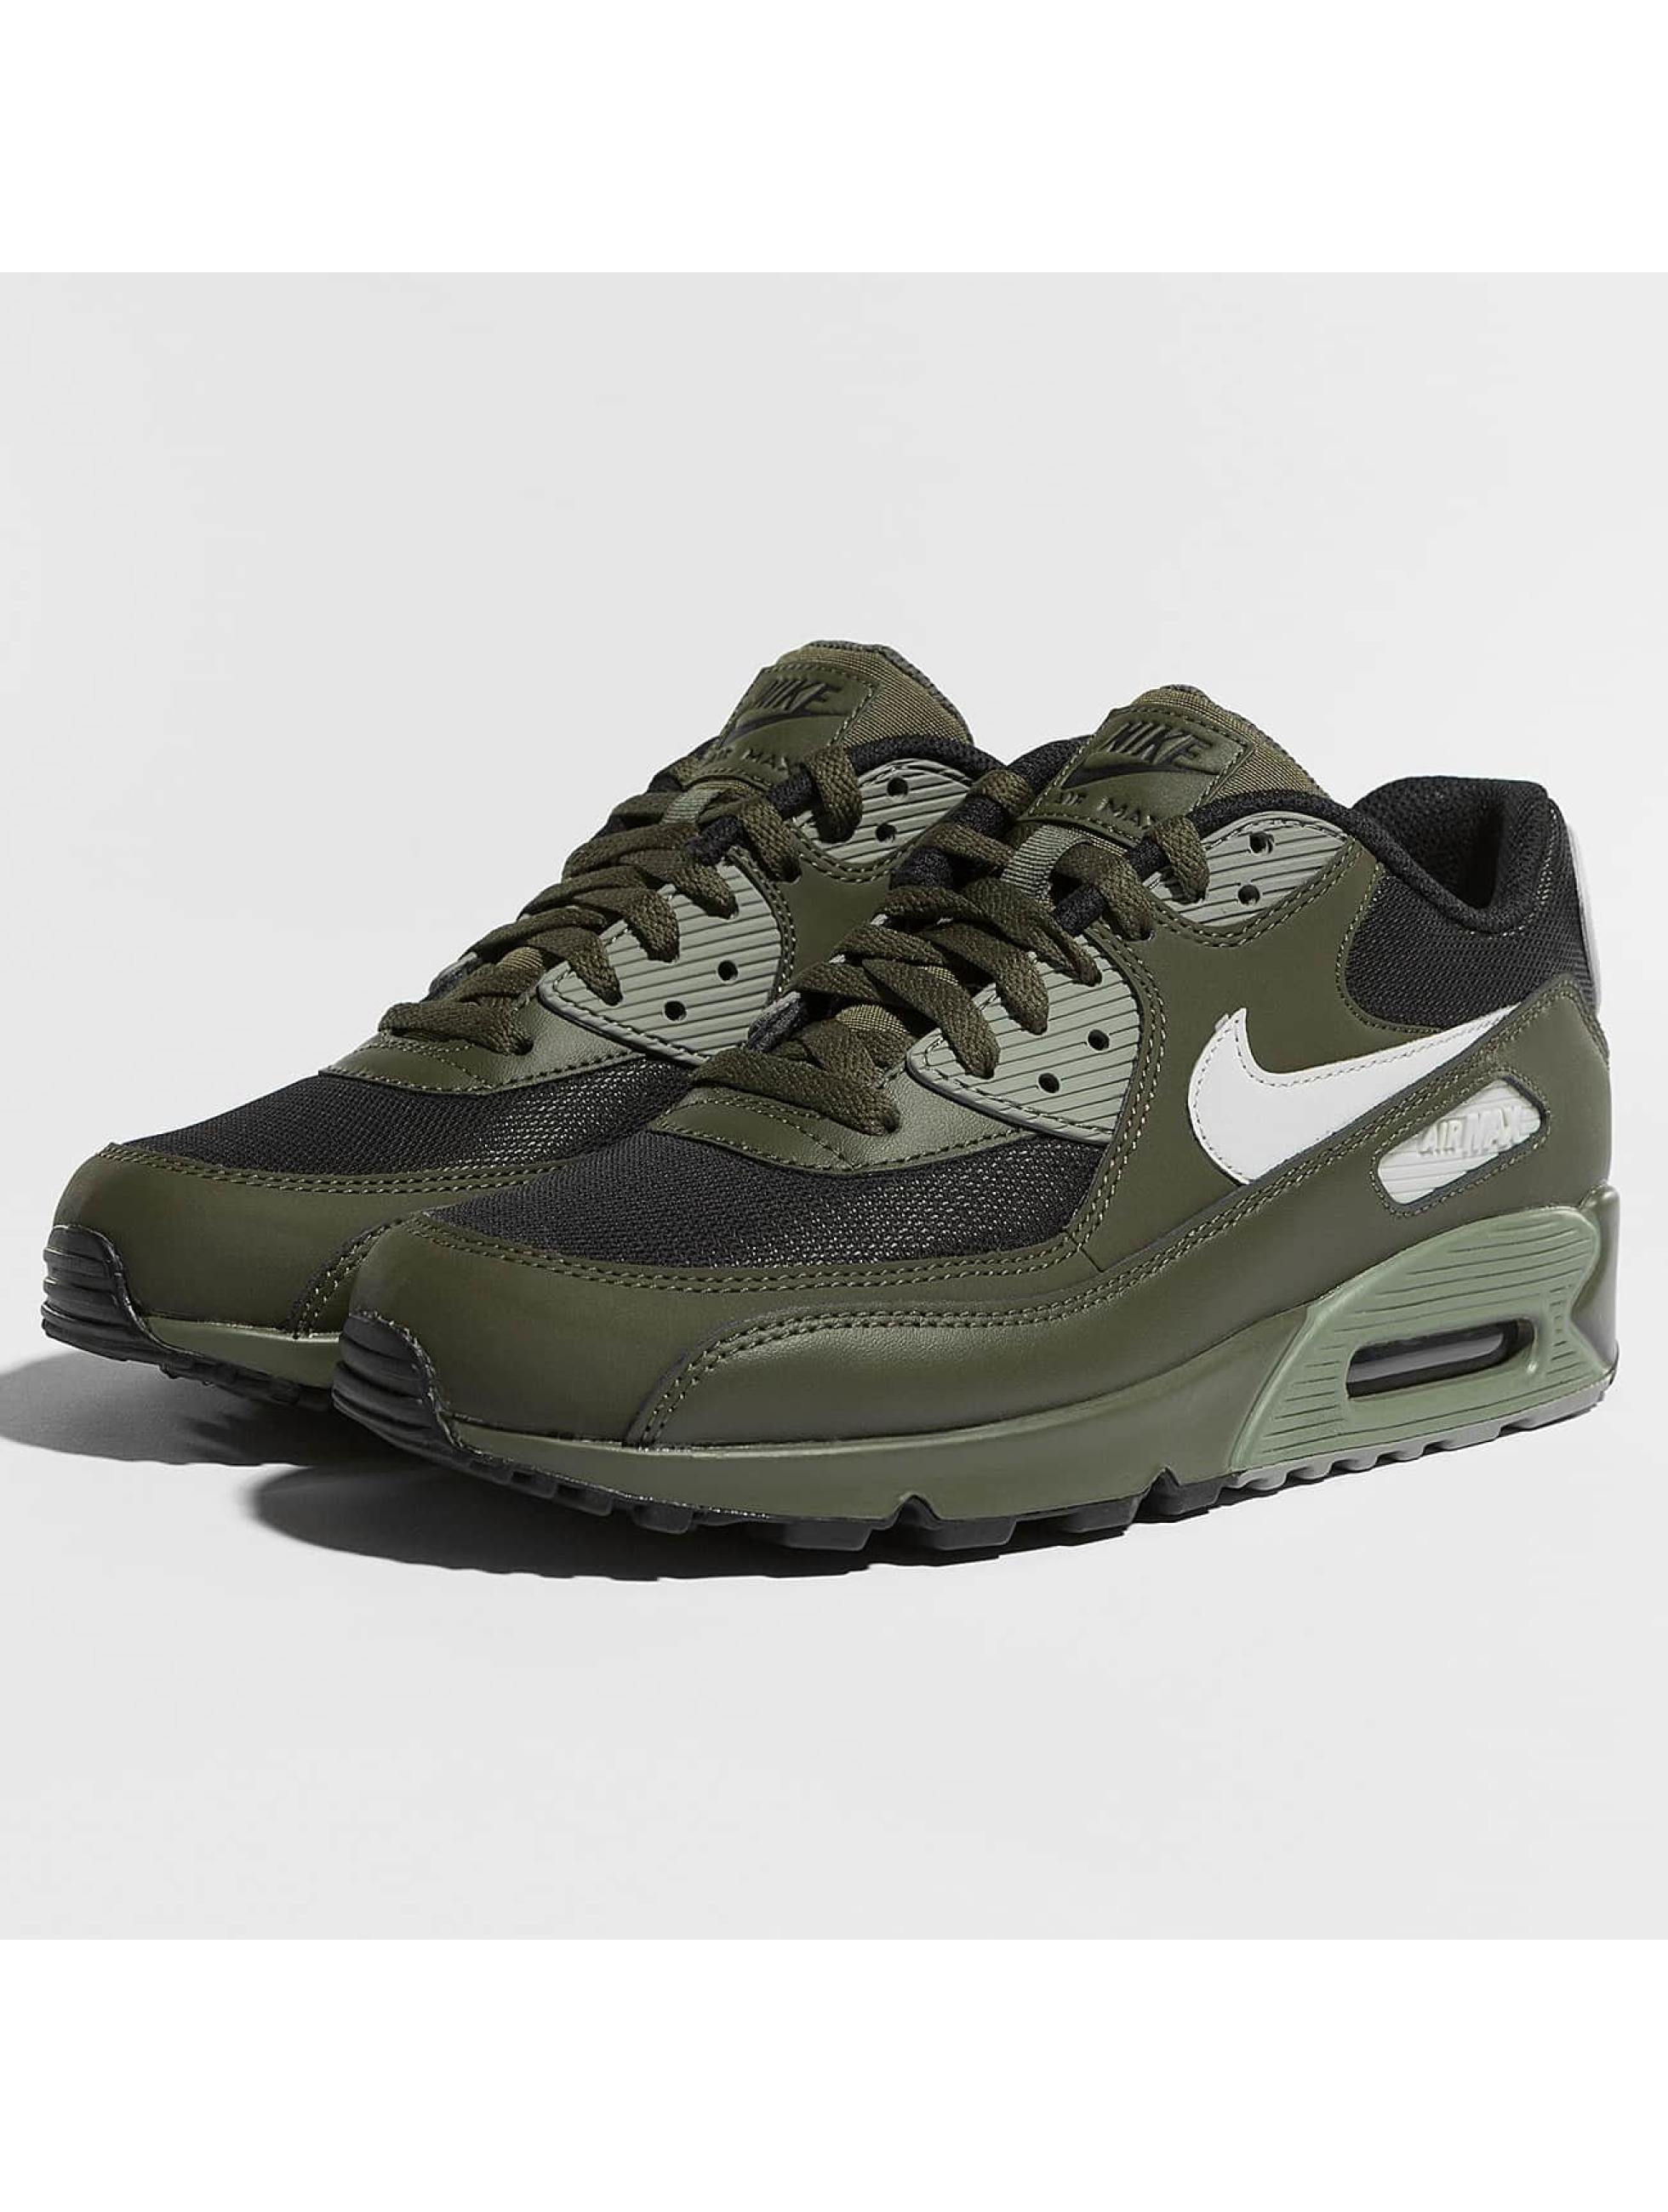 Nike Herren Sneaker Air Max 90 Essential In Khaki 422830